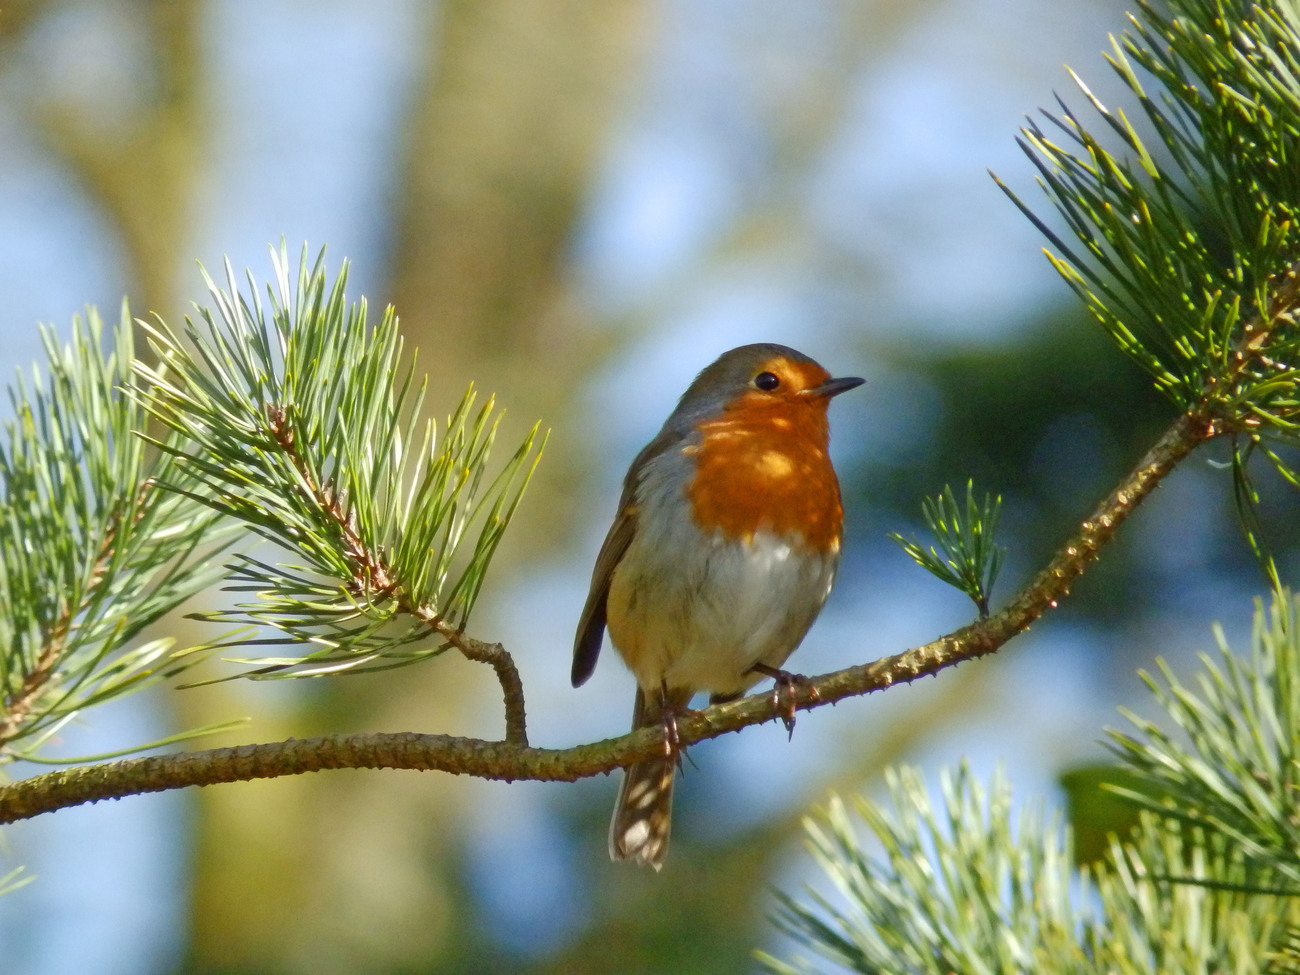 The robin in the tree.